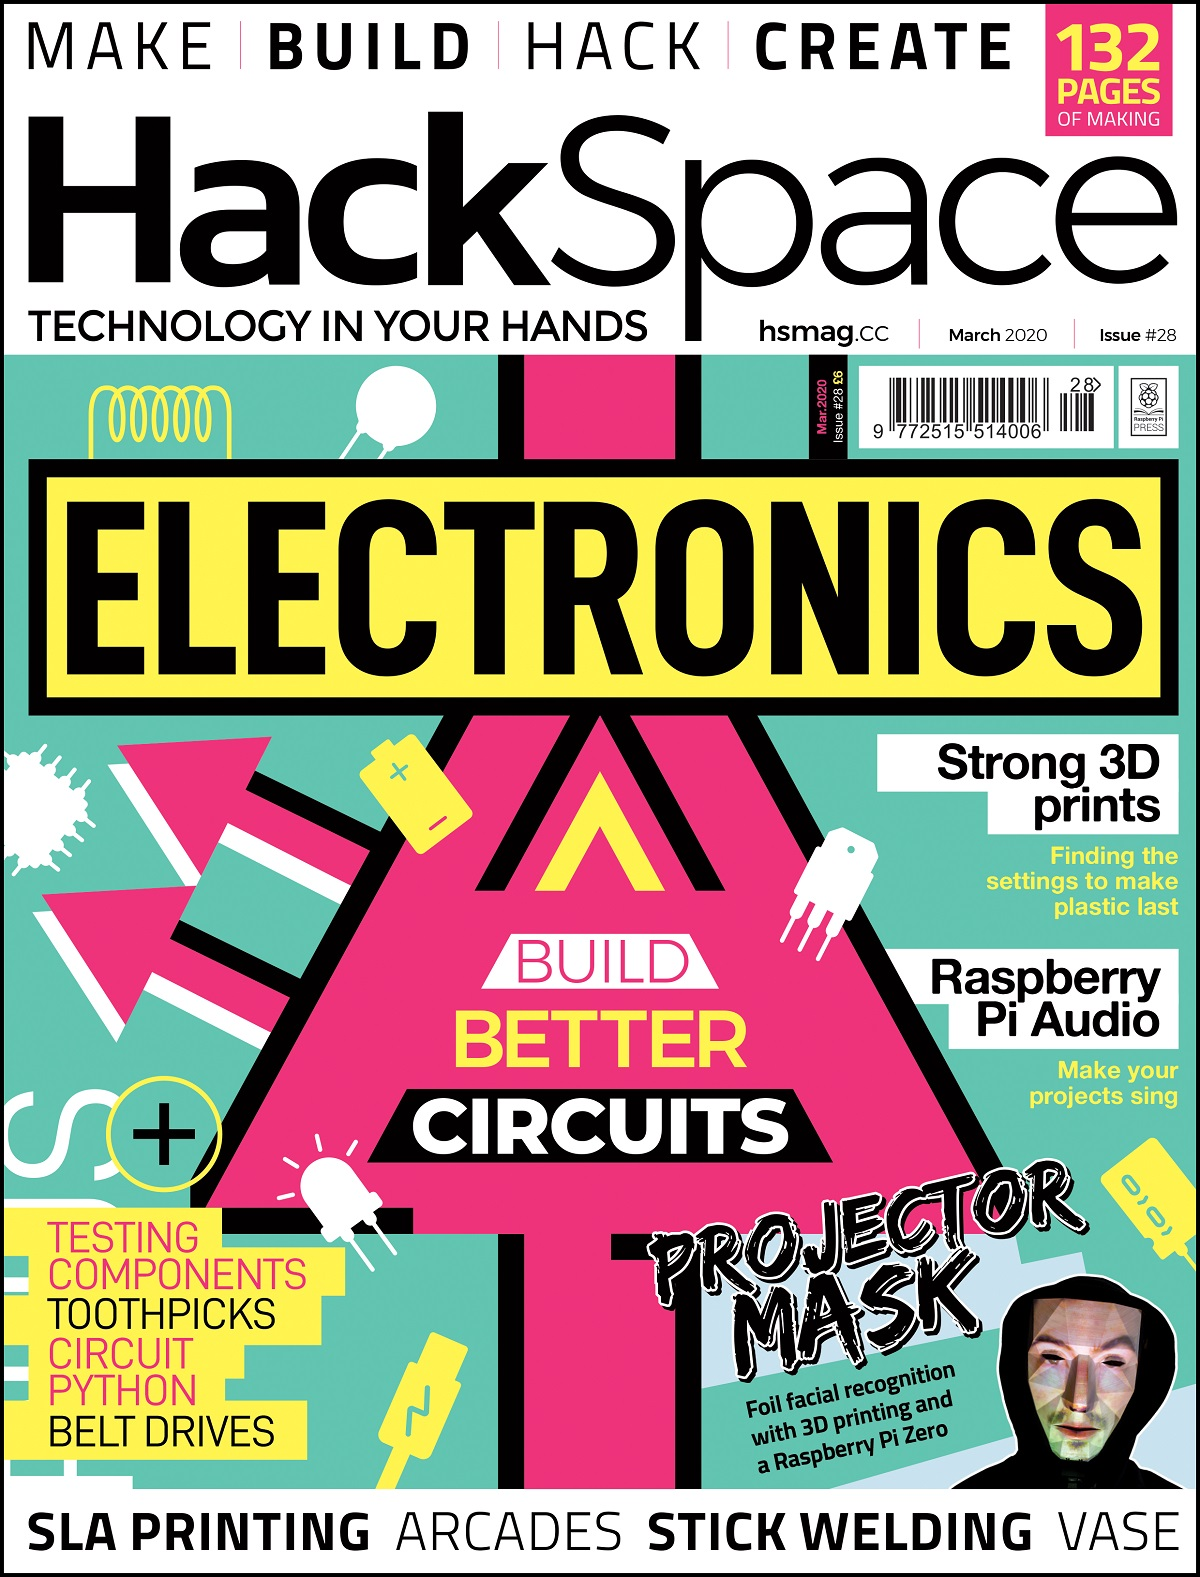 HackSpace magazine issue 28 cover